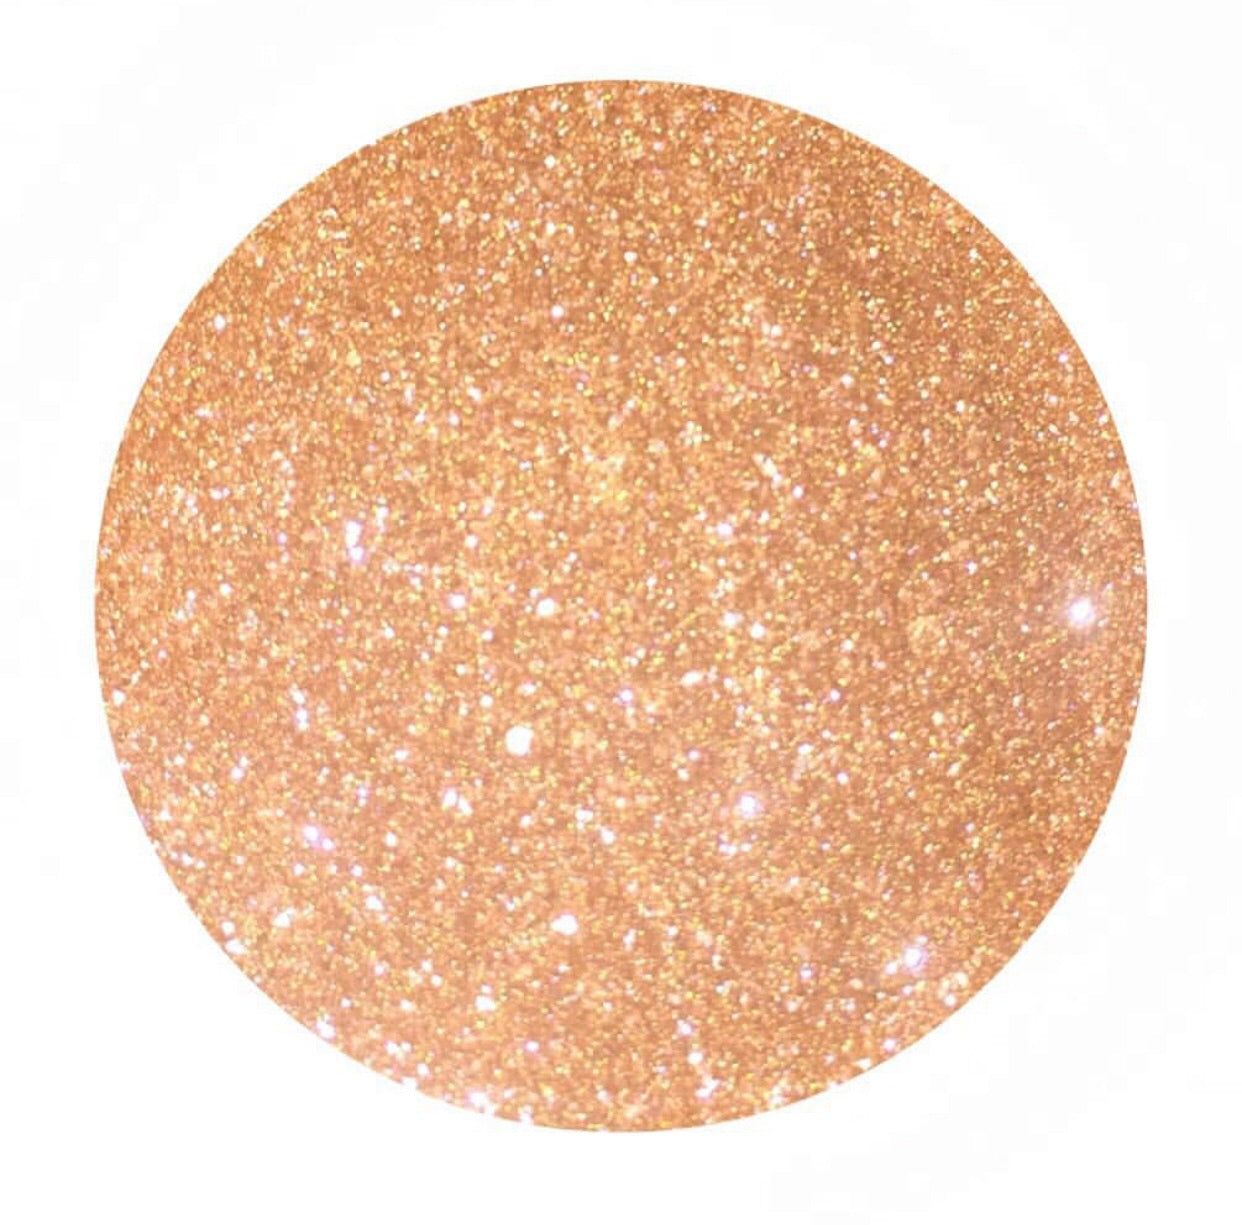 Champagne sparks - Highlighter